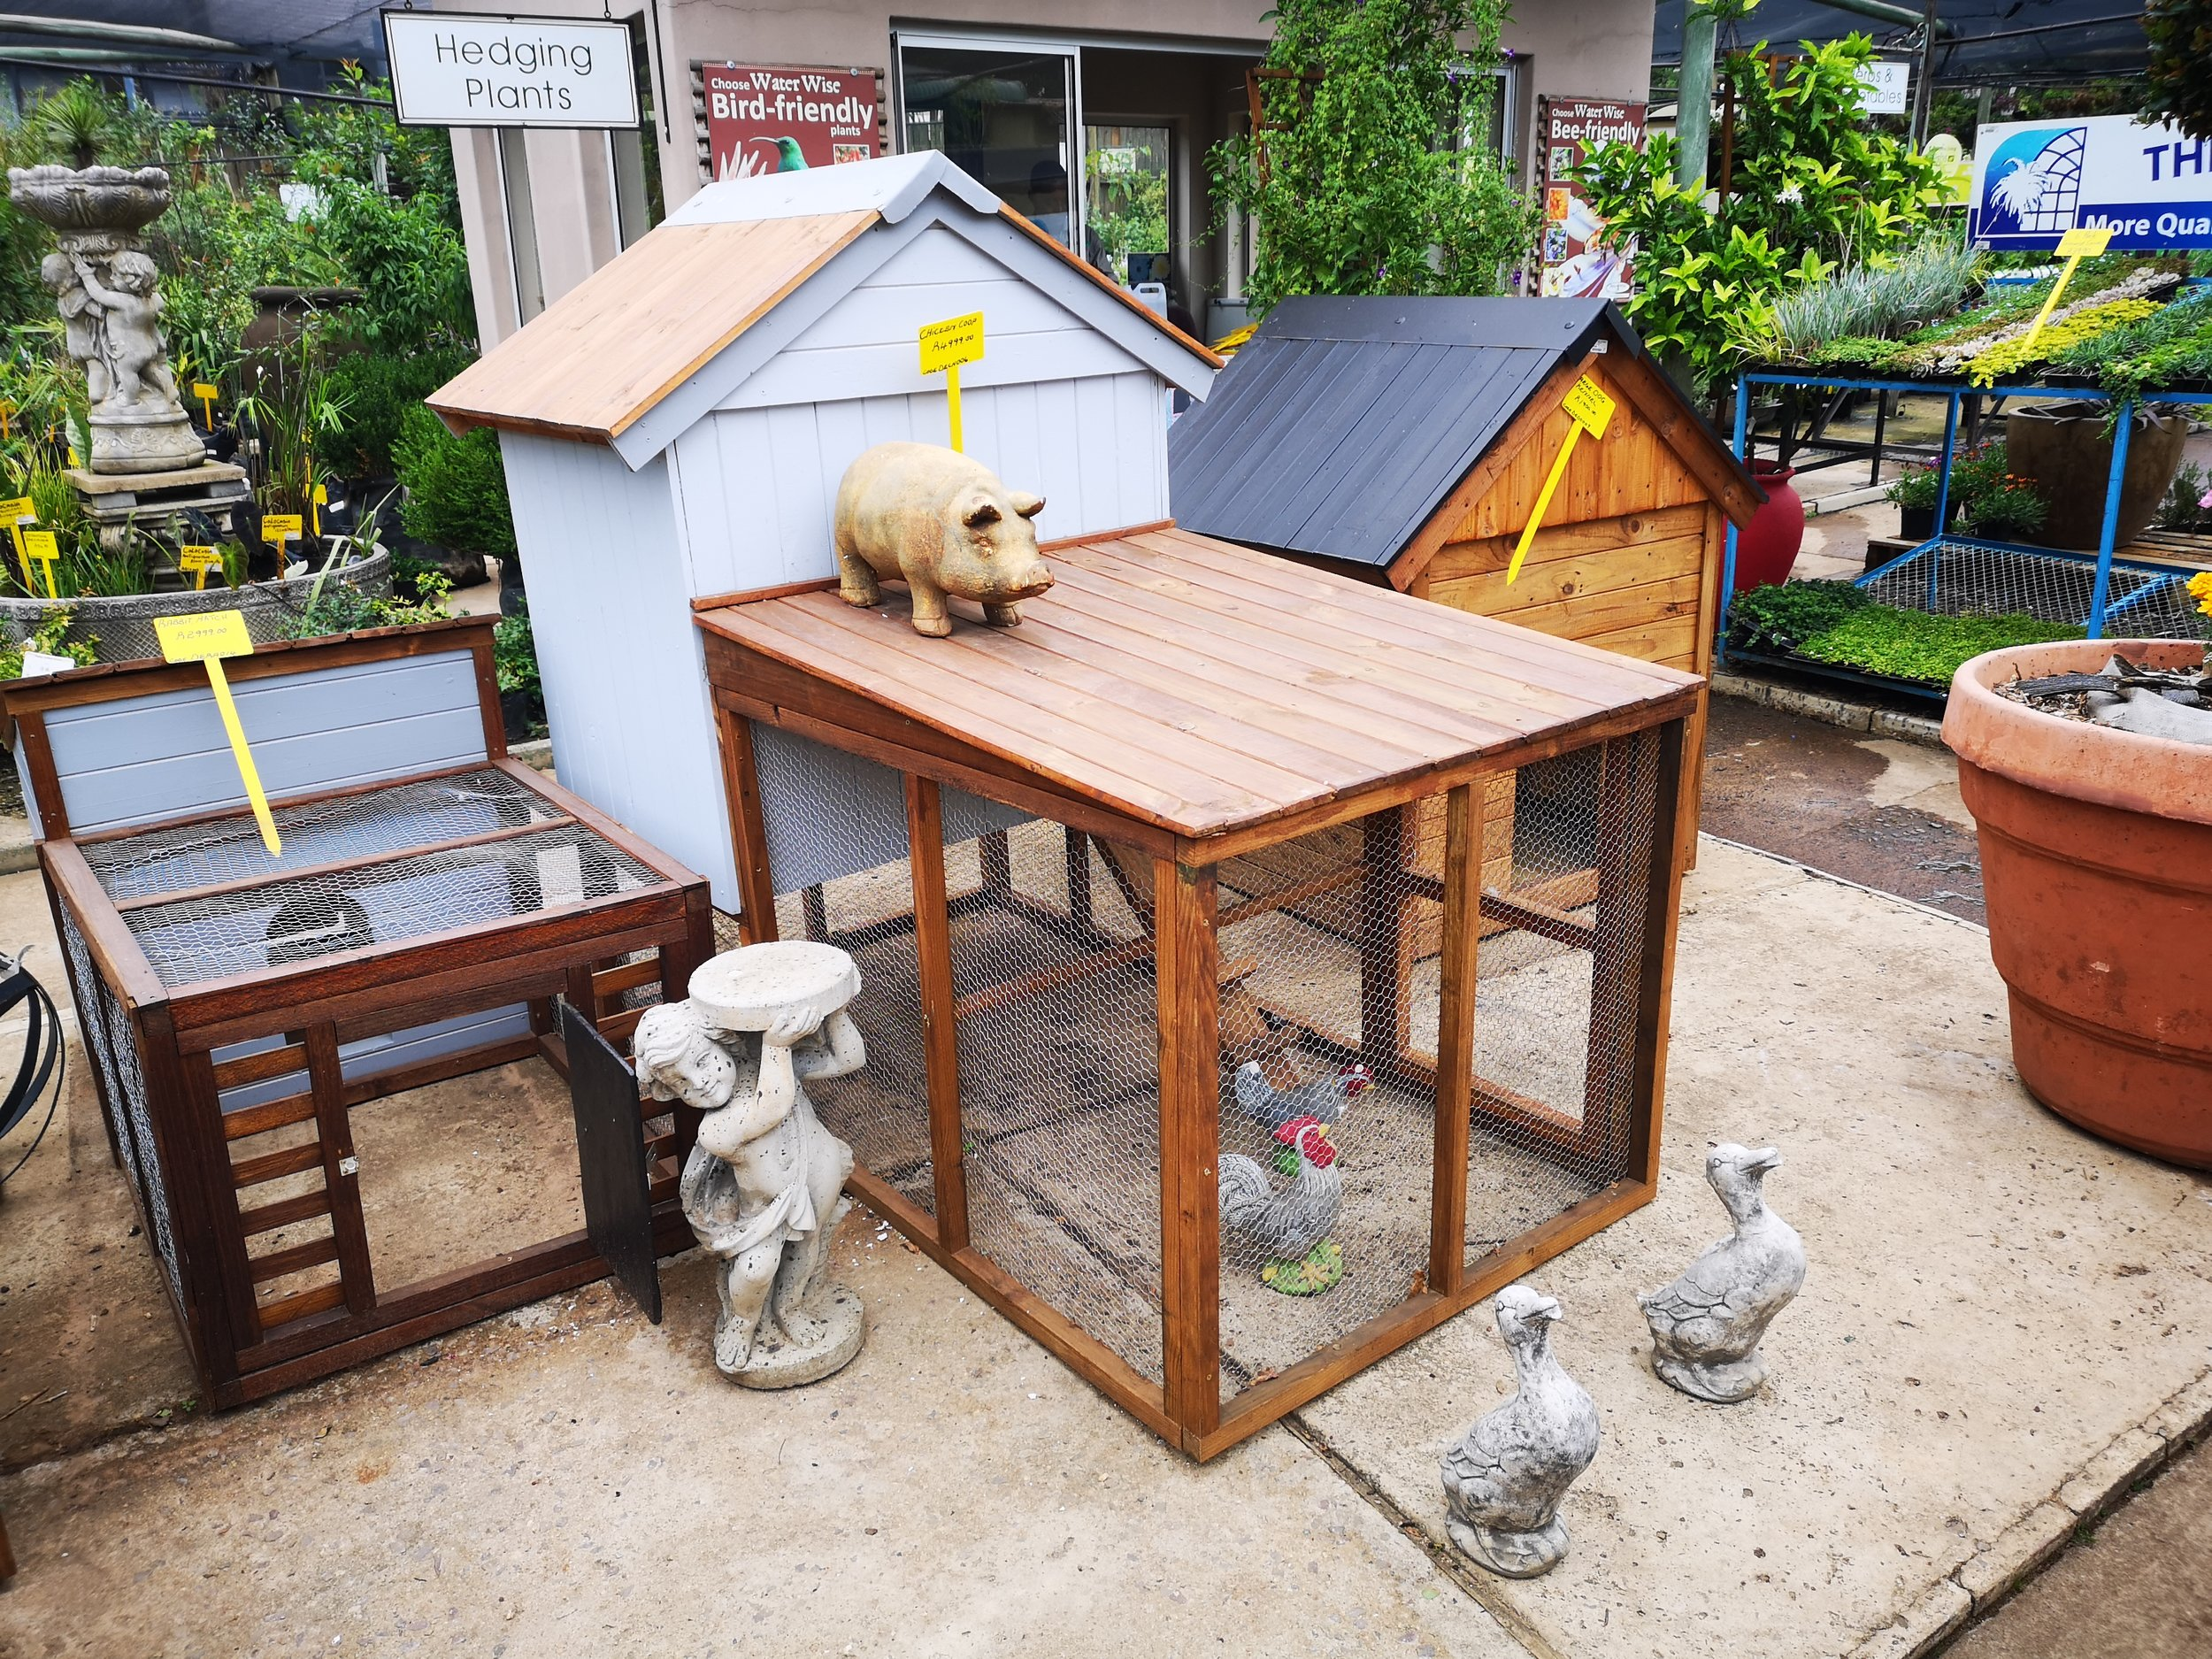 Wooden dog, chicken and rabbit structures